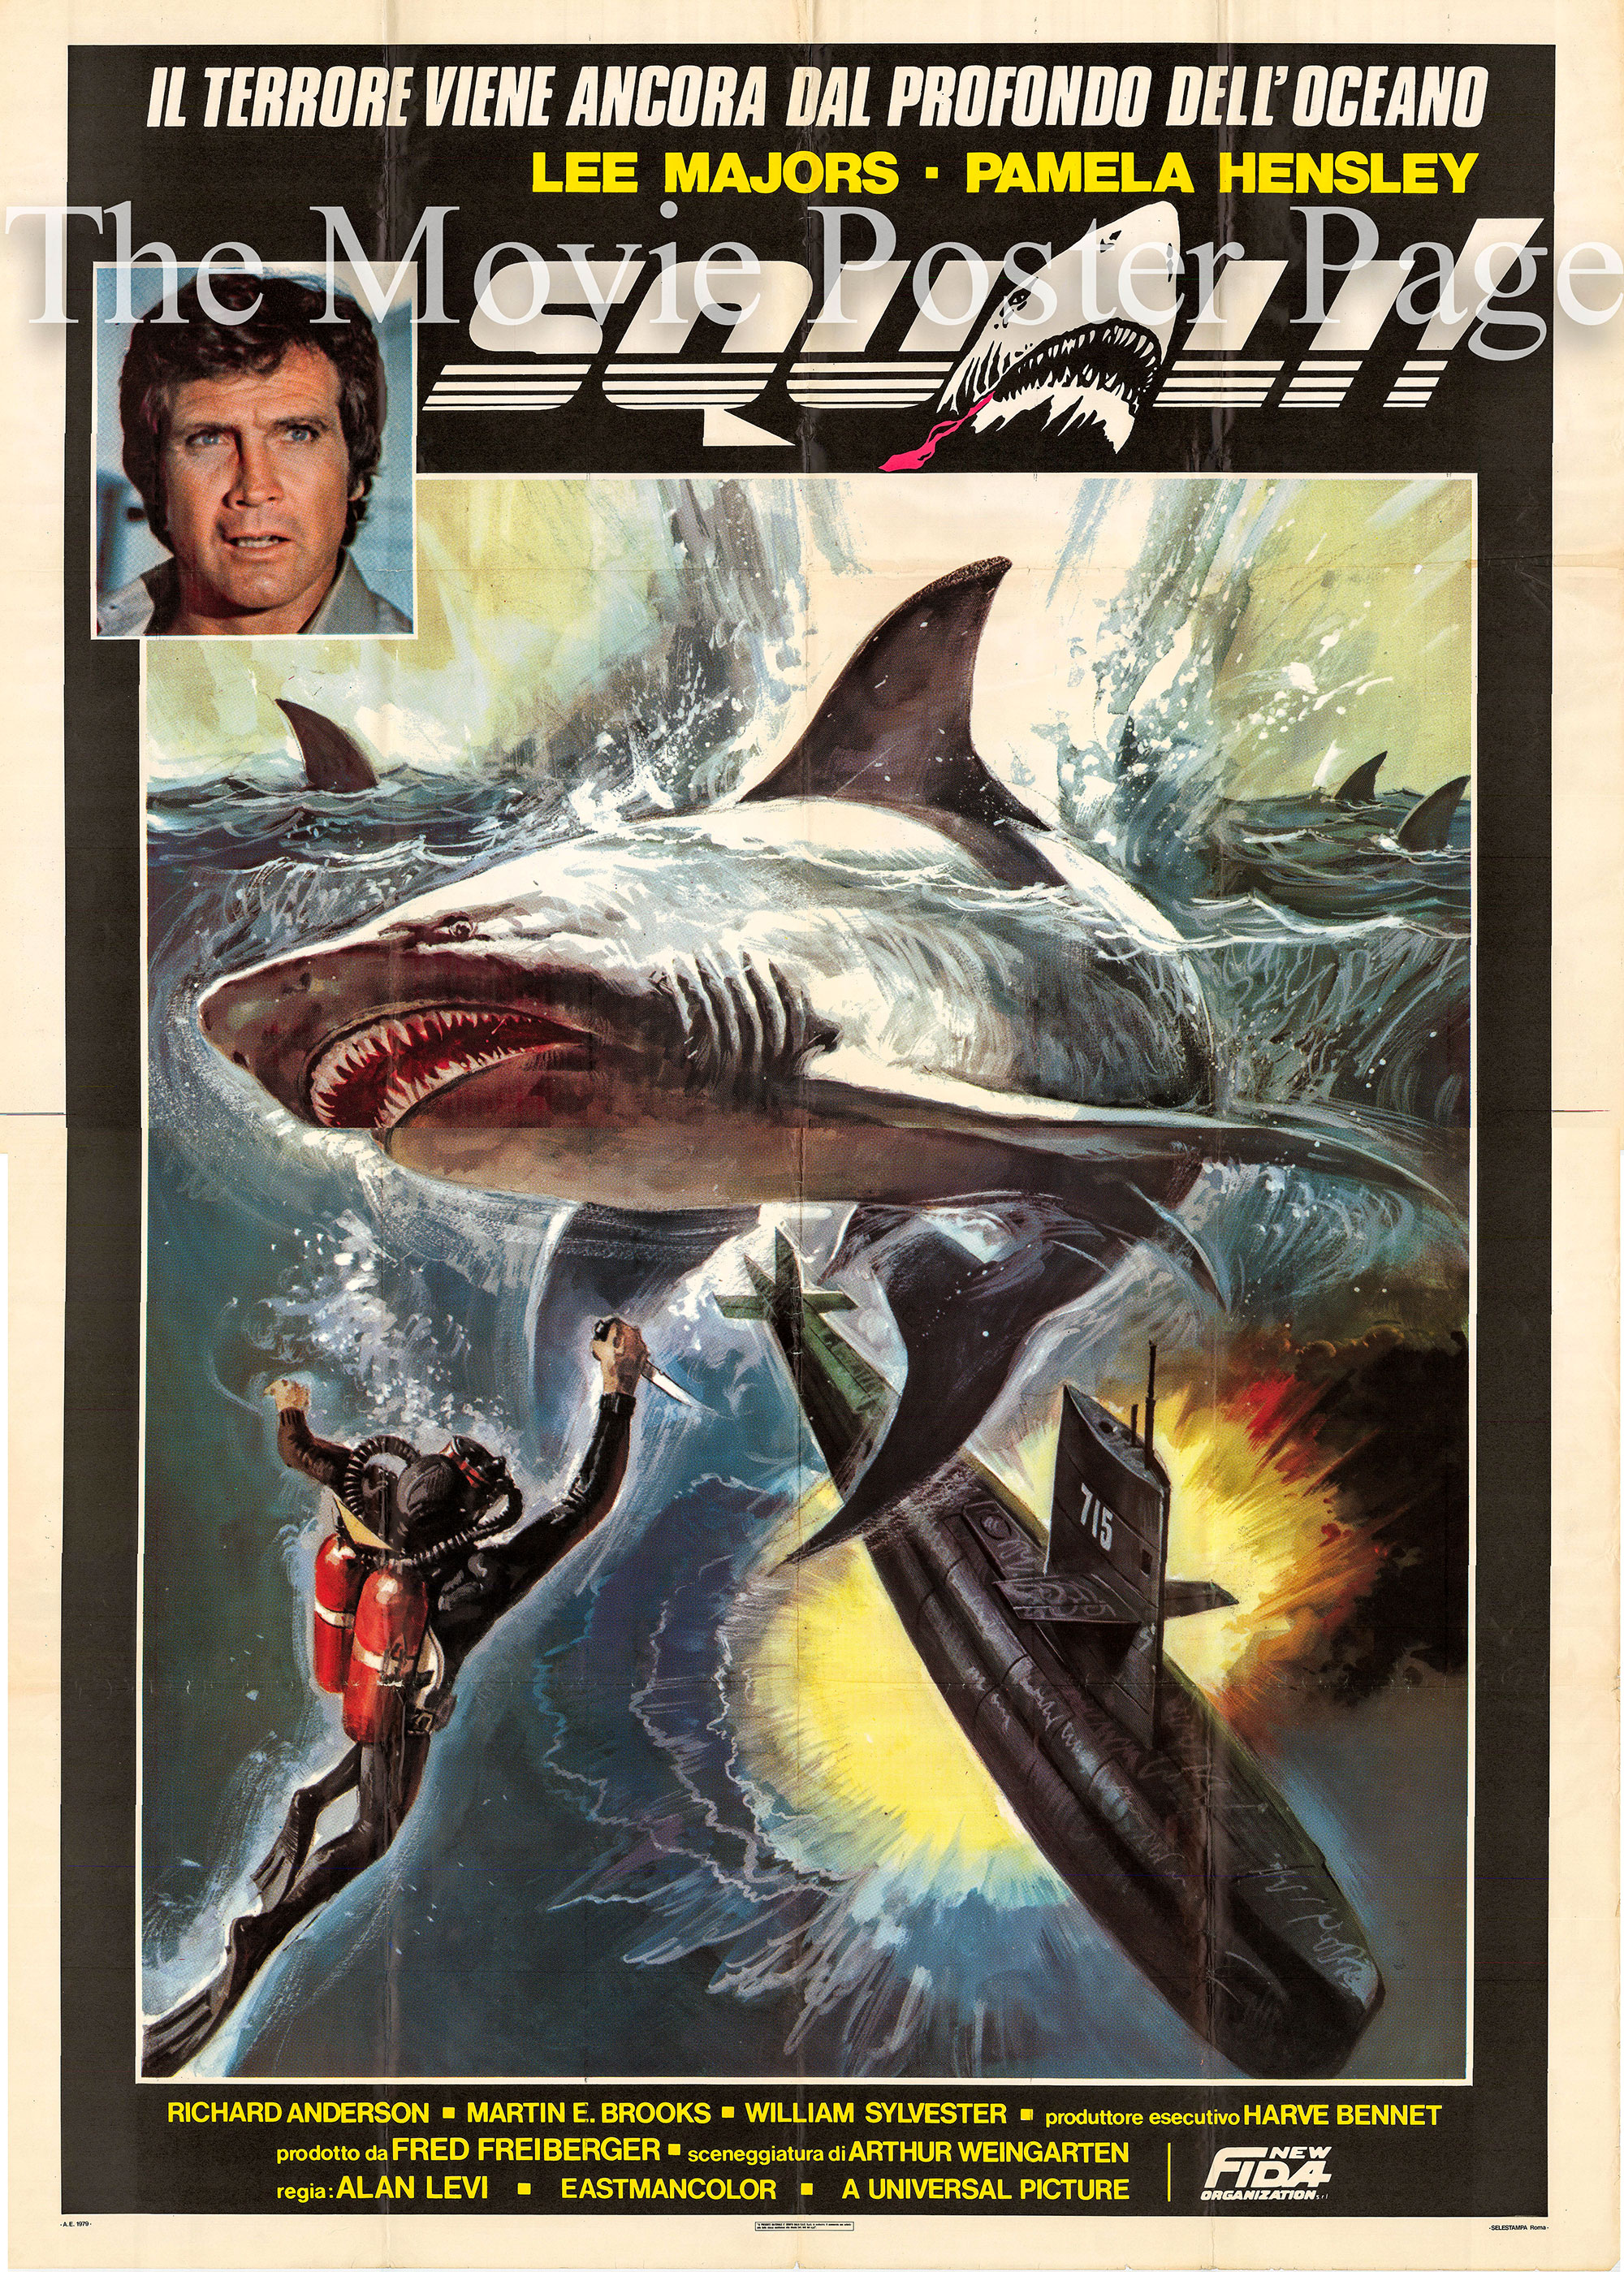 Pictured is an Italian four-sheet promotional poster for a 1979 rerelease of the 1977 Alan J. Levi TV film Sharks starring Lee Majors, from <i>The Six Million Dollar Man</i>.